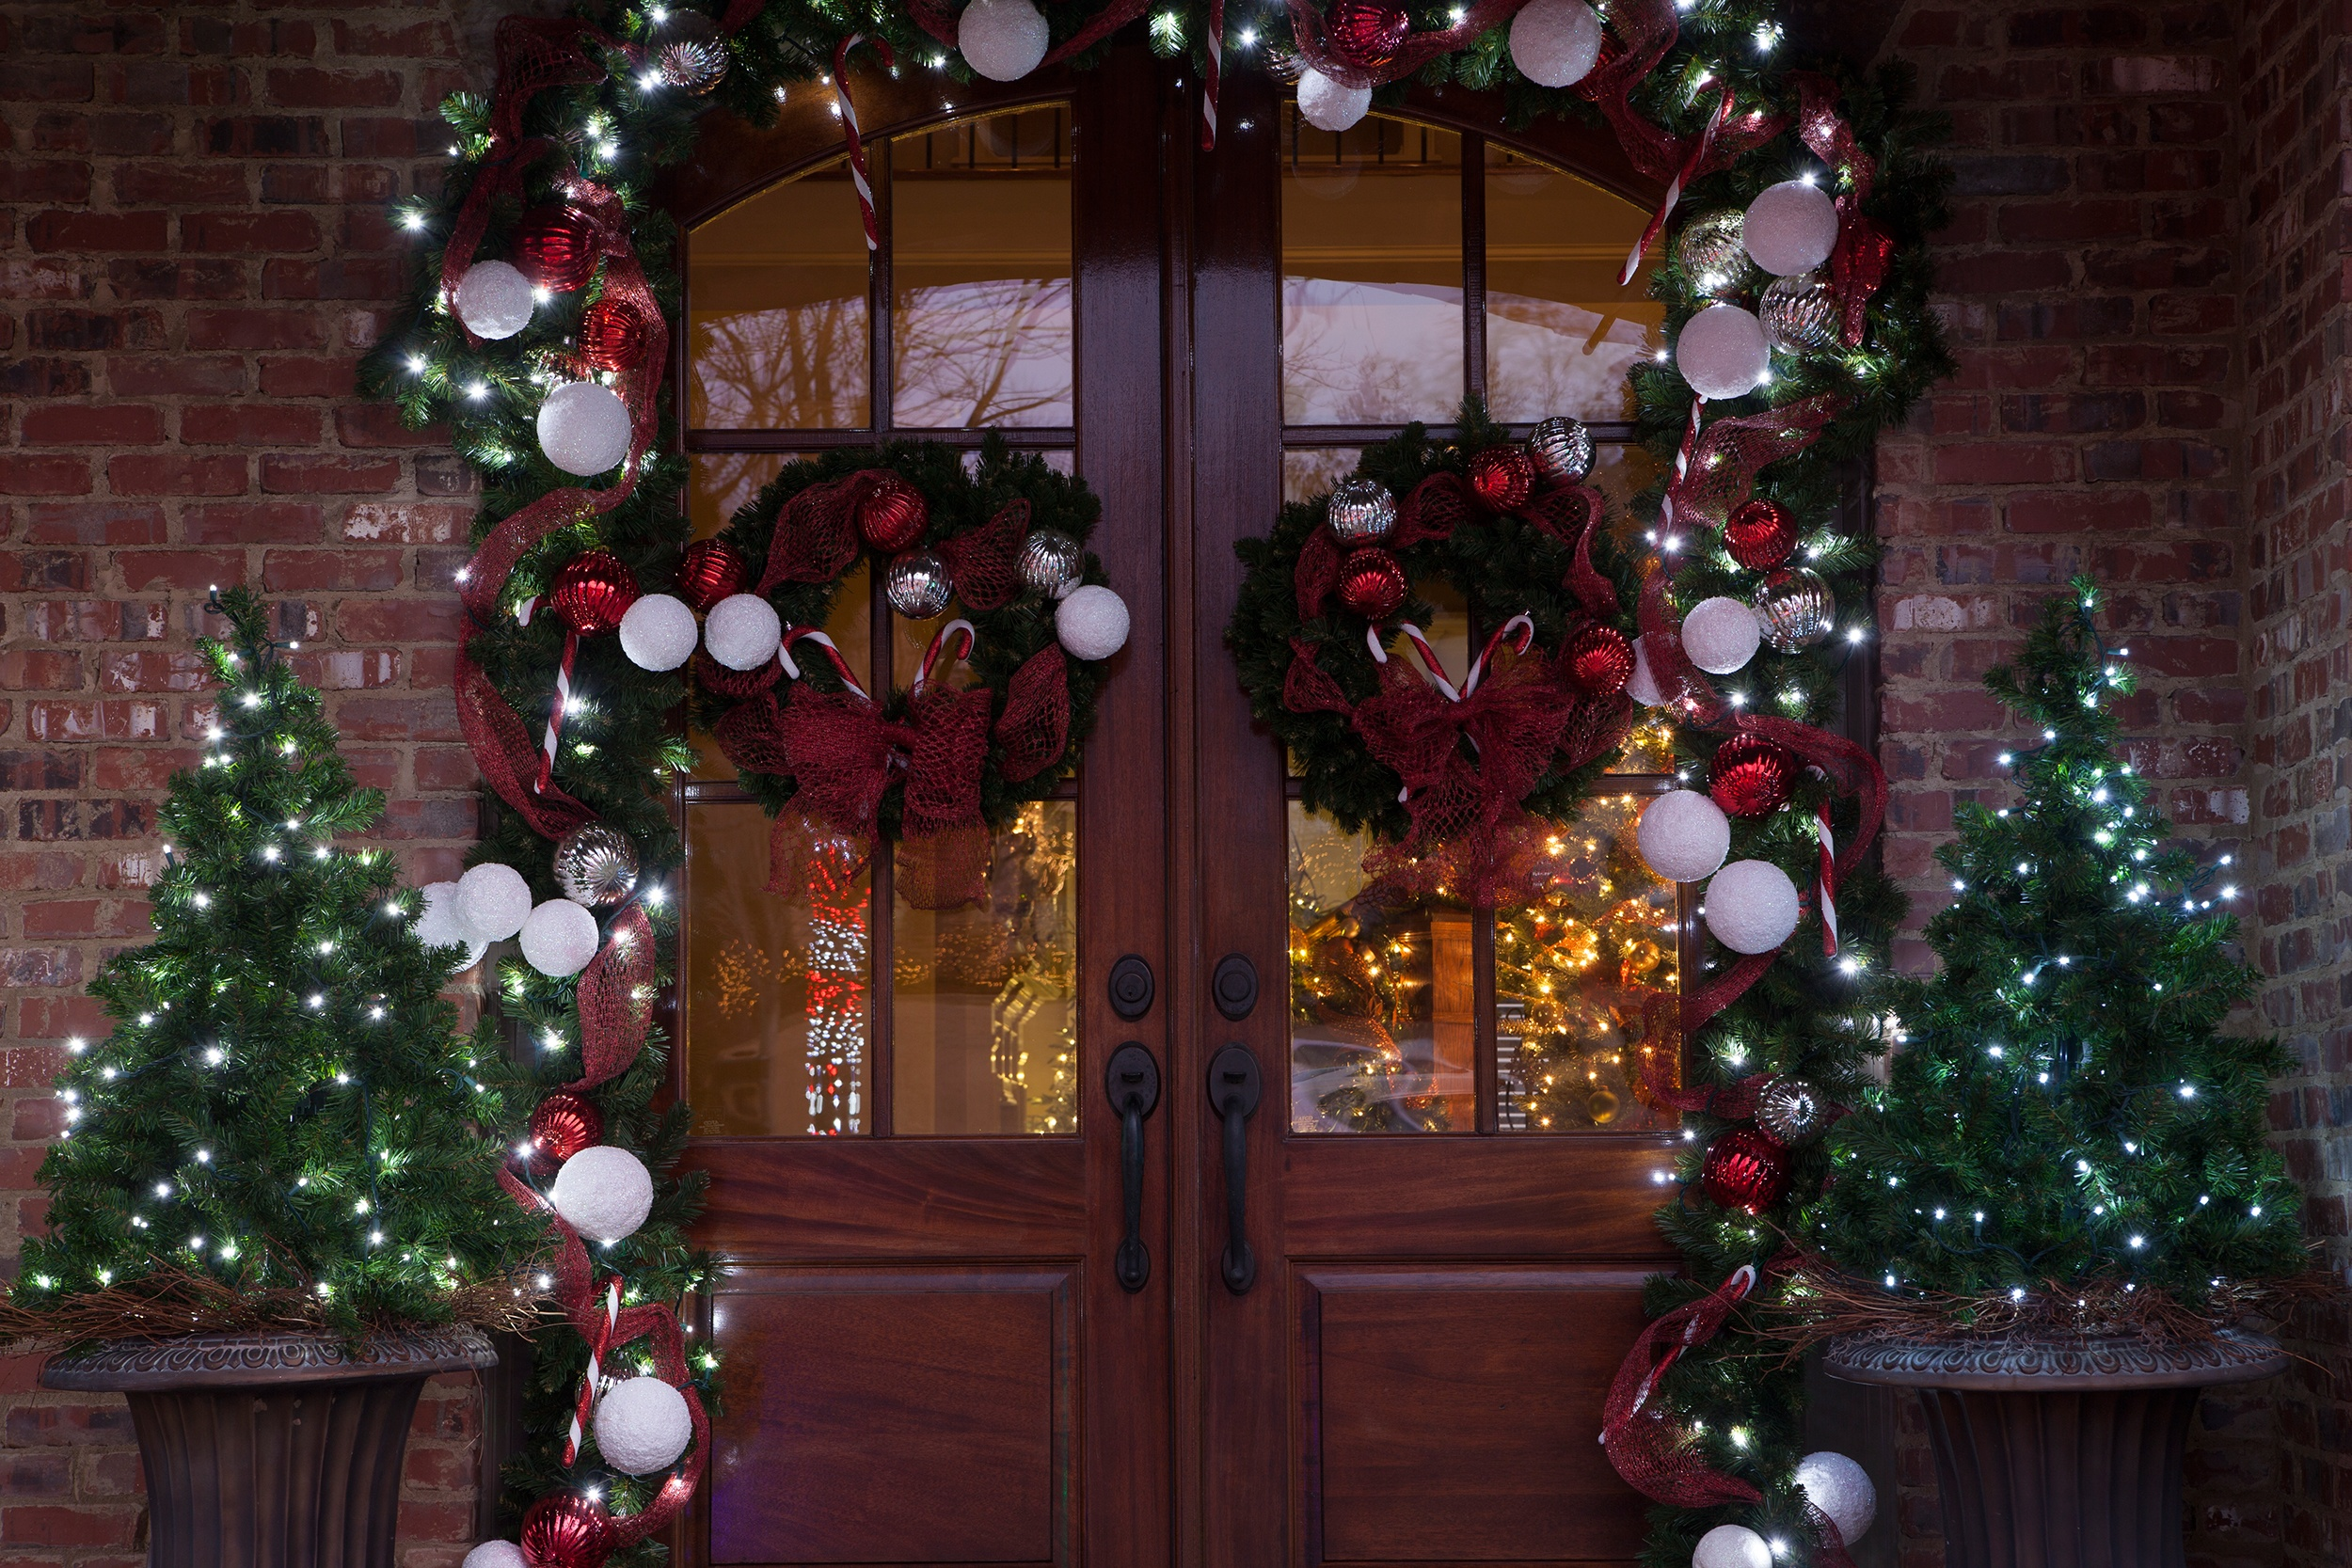 Decorate with Christmas garland, wreaths and trees on and around the front door.